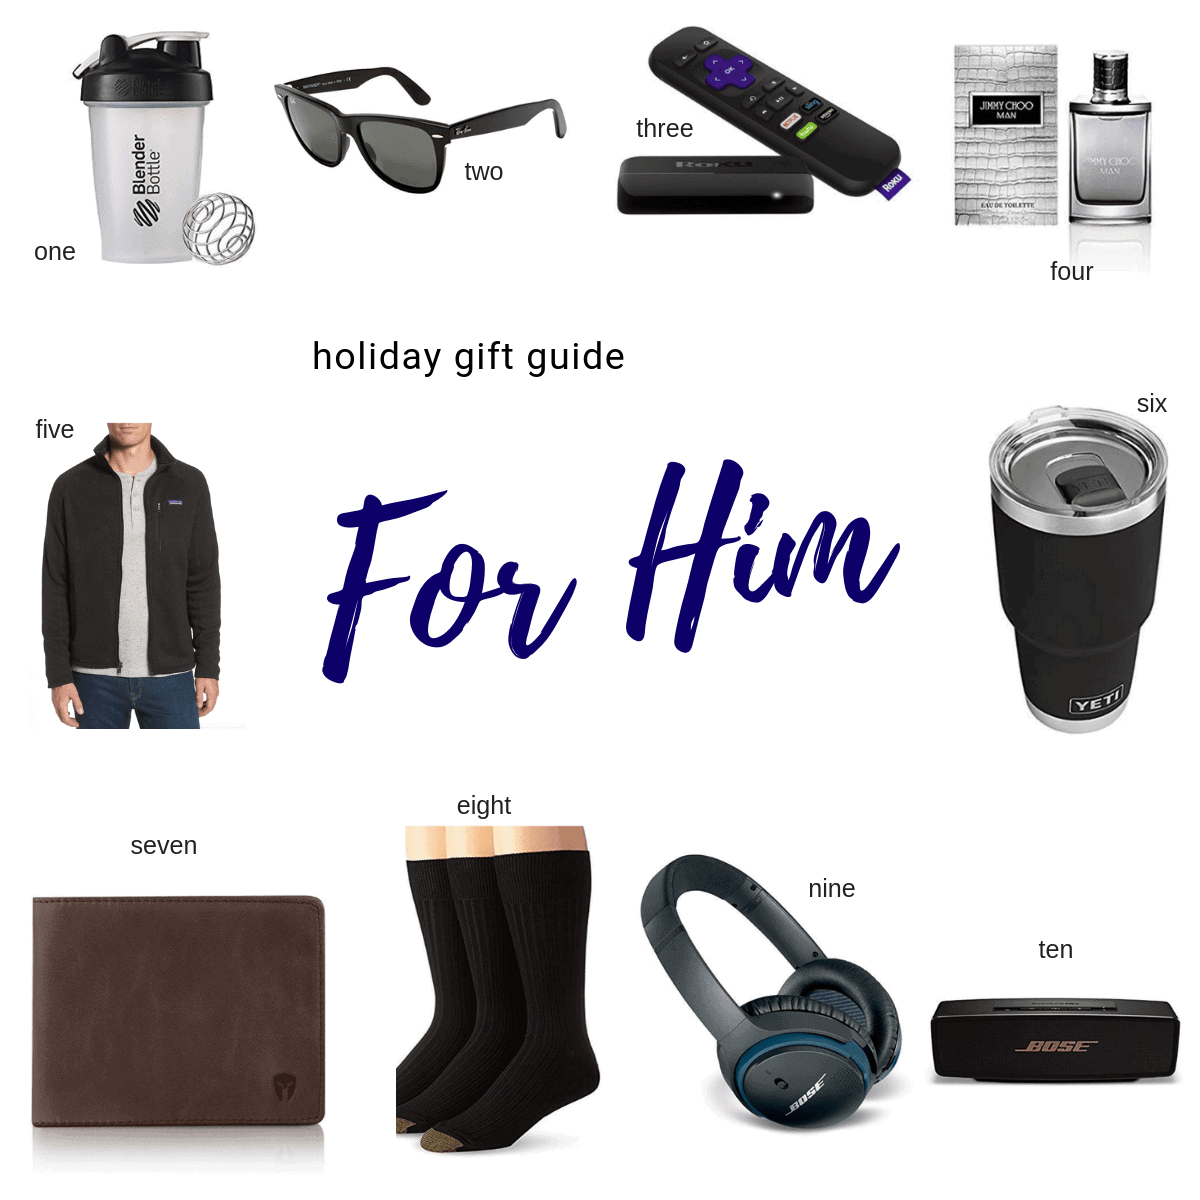 For him gift guide items